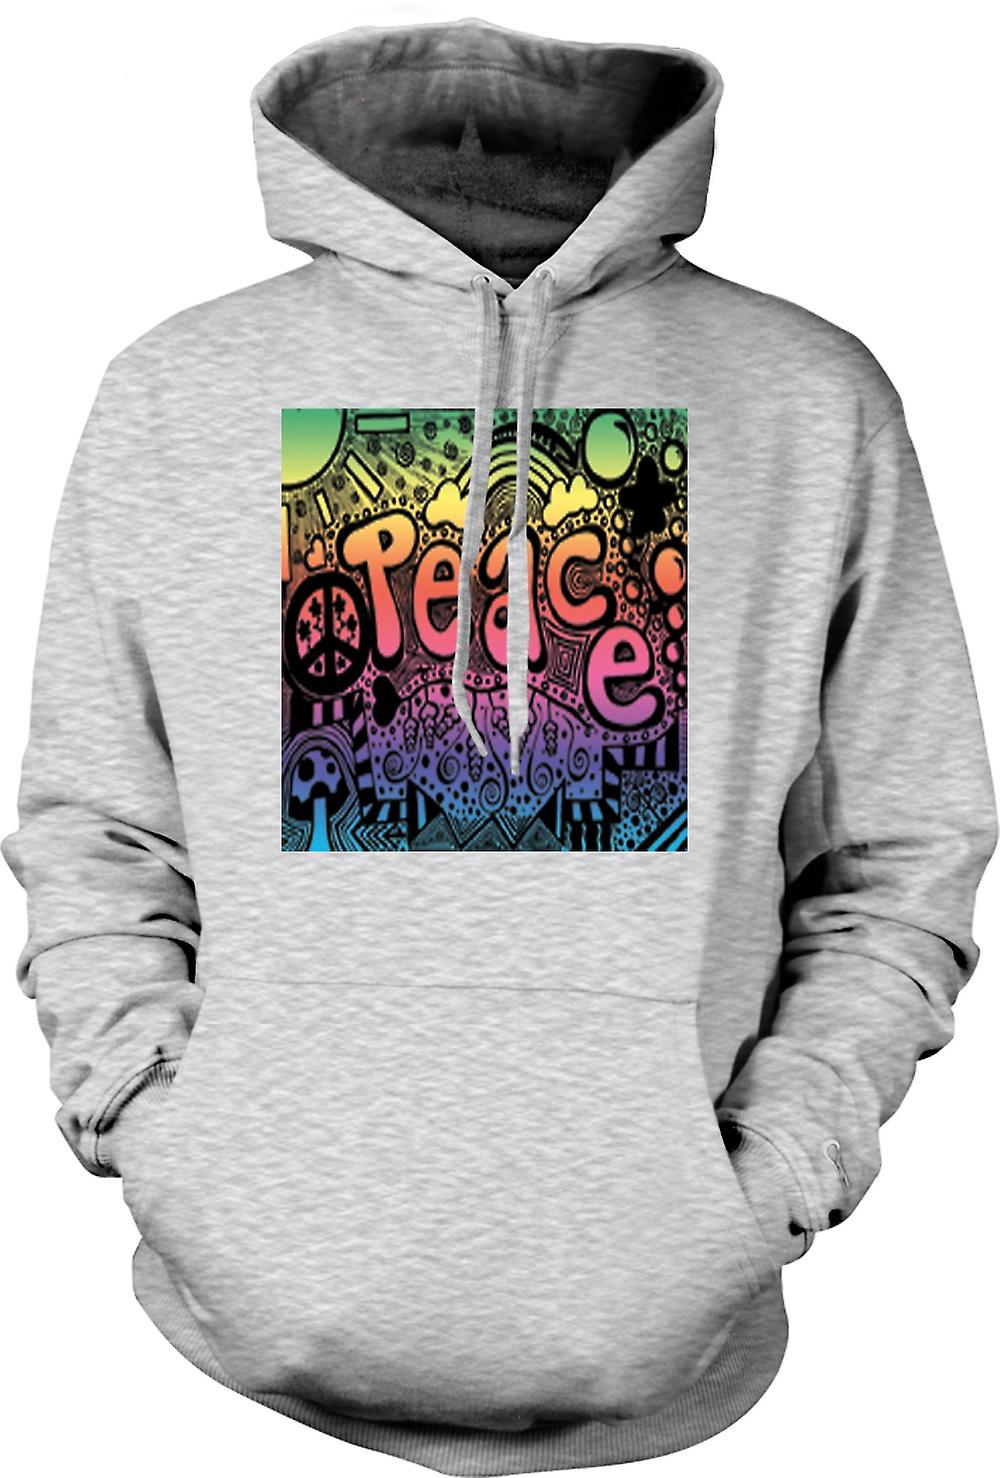 Mens Hoodie - Peace Hippy Psychedelic Design